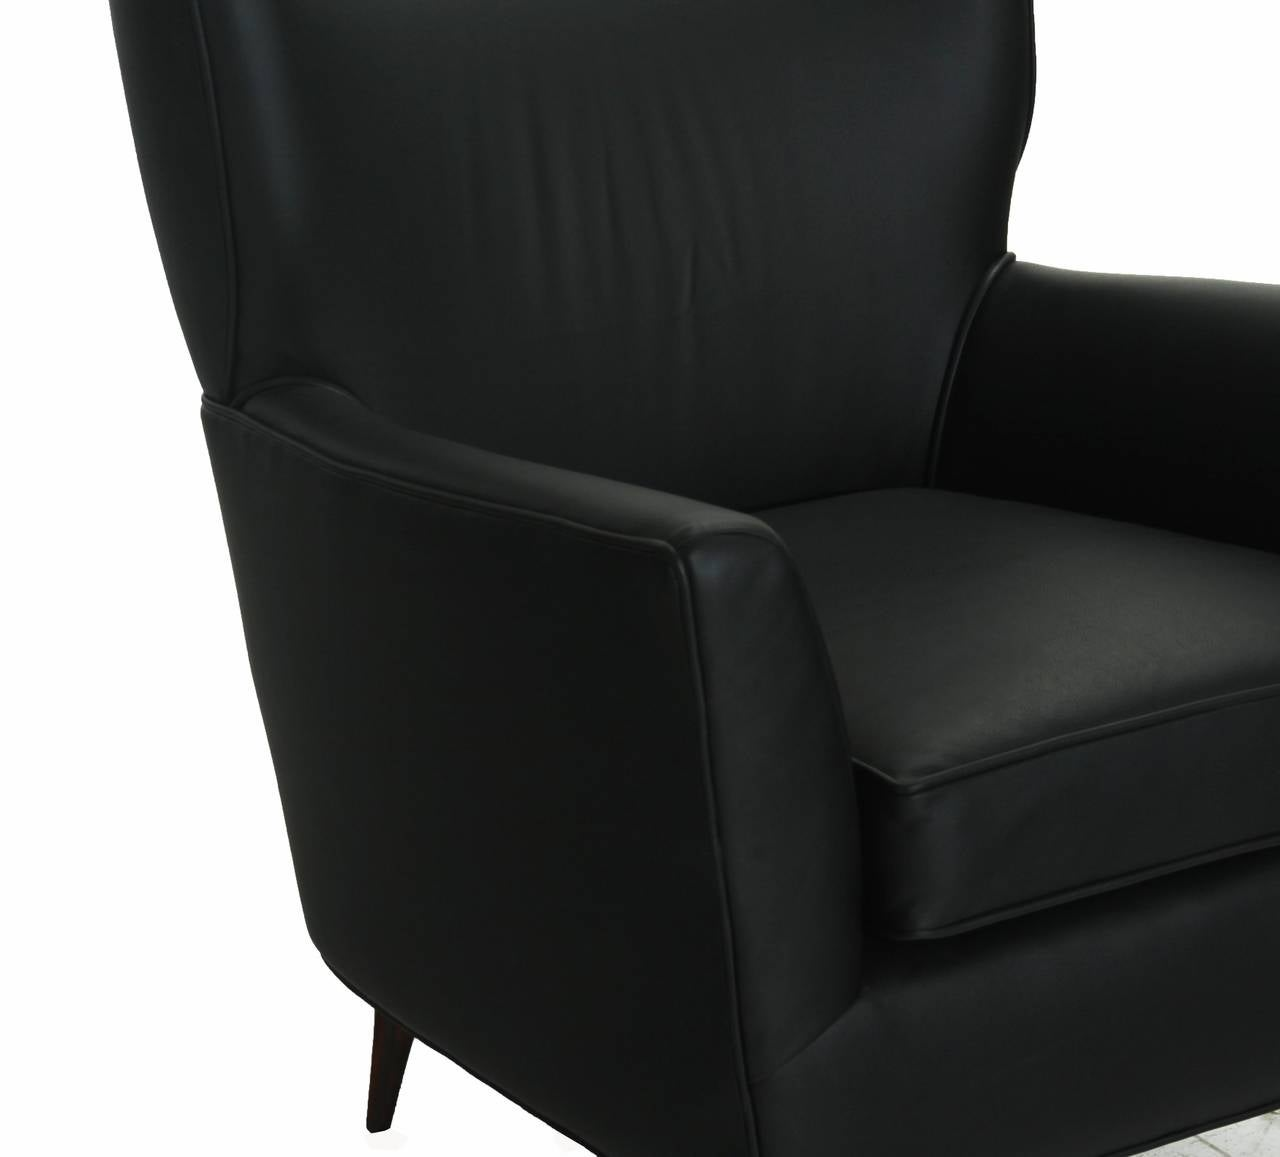 Black Leather Armchair Club Chair with Lathed Wood Legs by Joaquim Tenreiro For Sale 2